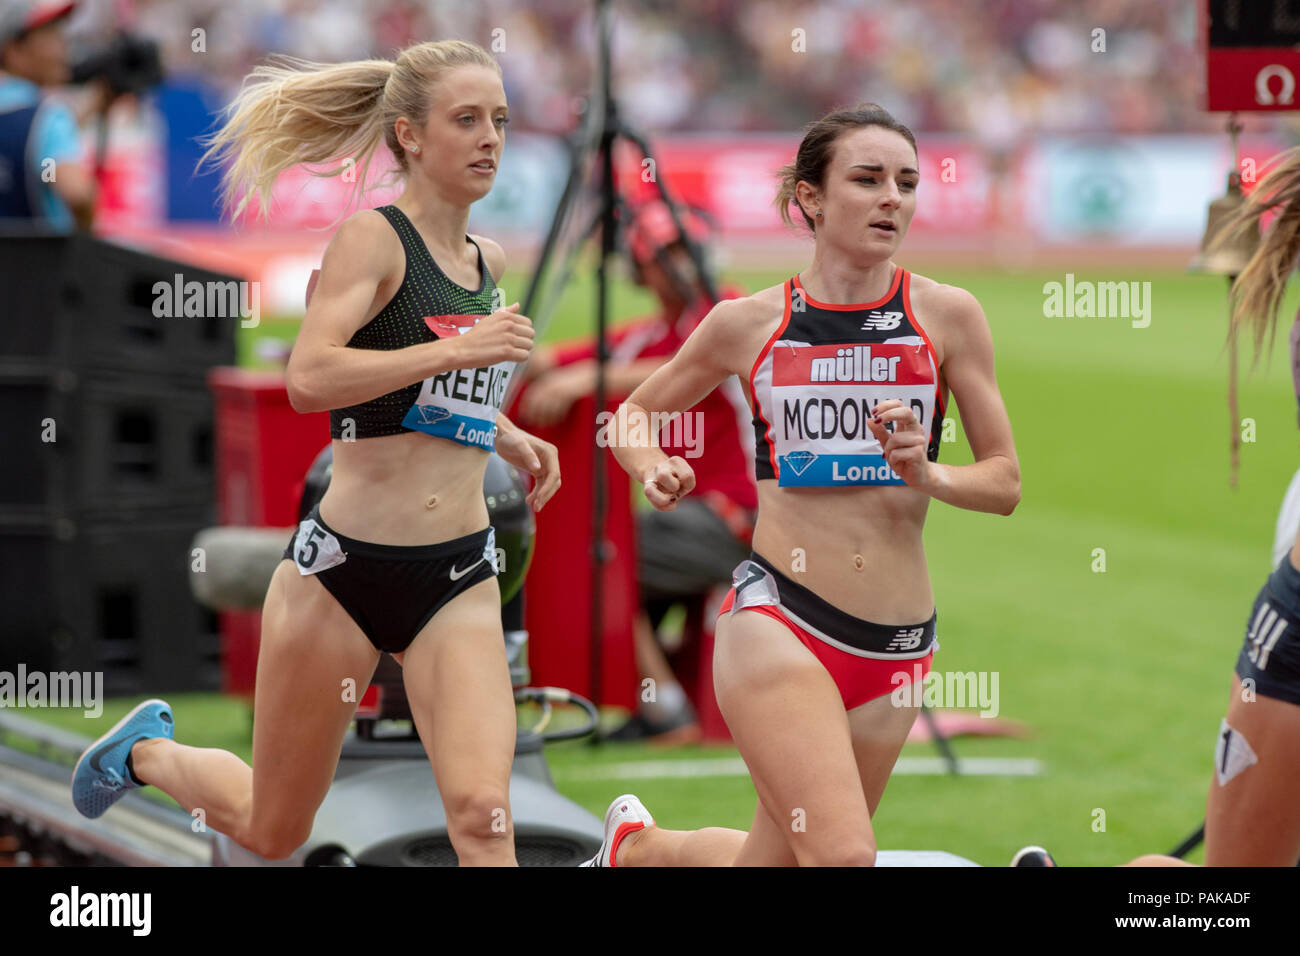 London, UK. 22nd July 2018. Sarah McDonald (GBR) leads Jemma Reekie (GBR) in the Millicent Fawcett Mile at the Muller Anniversary Games at the London Stadium, London, Great Britain, on 22 July 2018. Credit: Andrew Peat/Alamy Live News - Stock Image